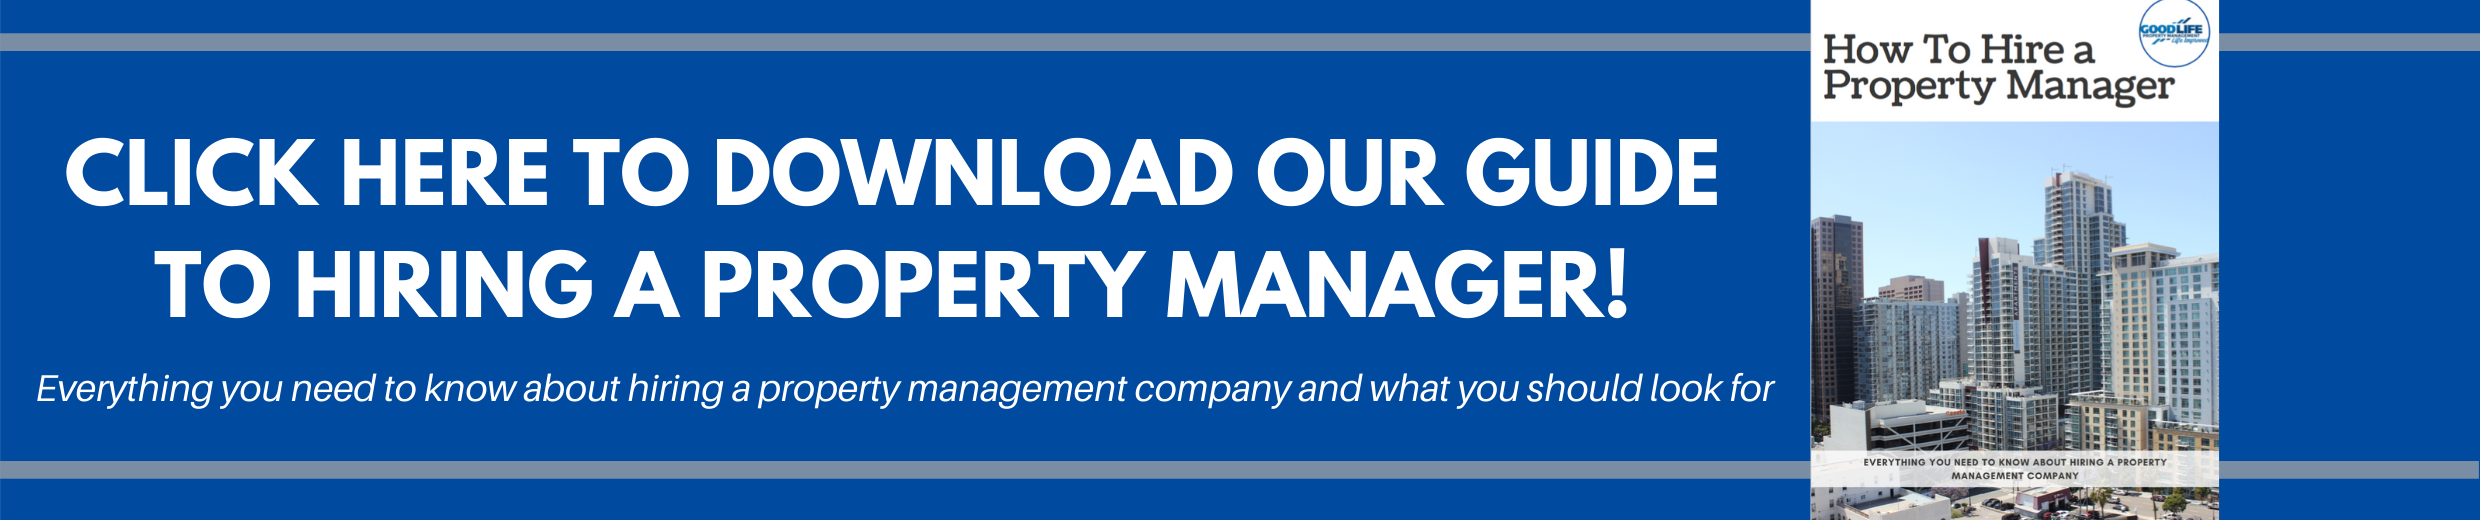 Guide to Hiring a Property Manager